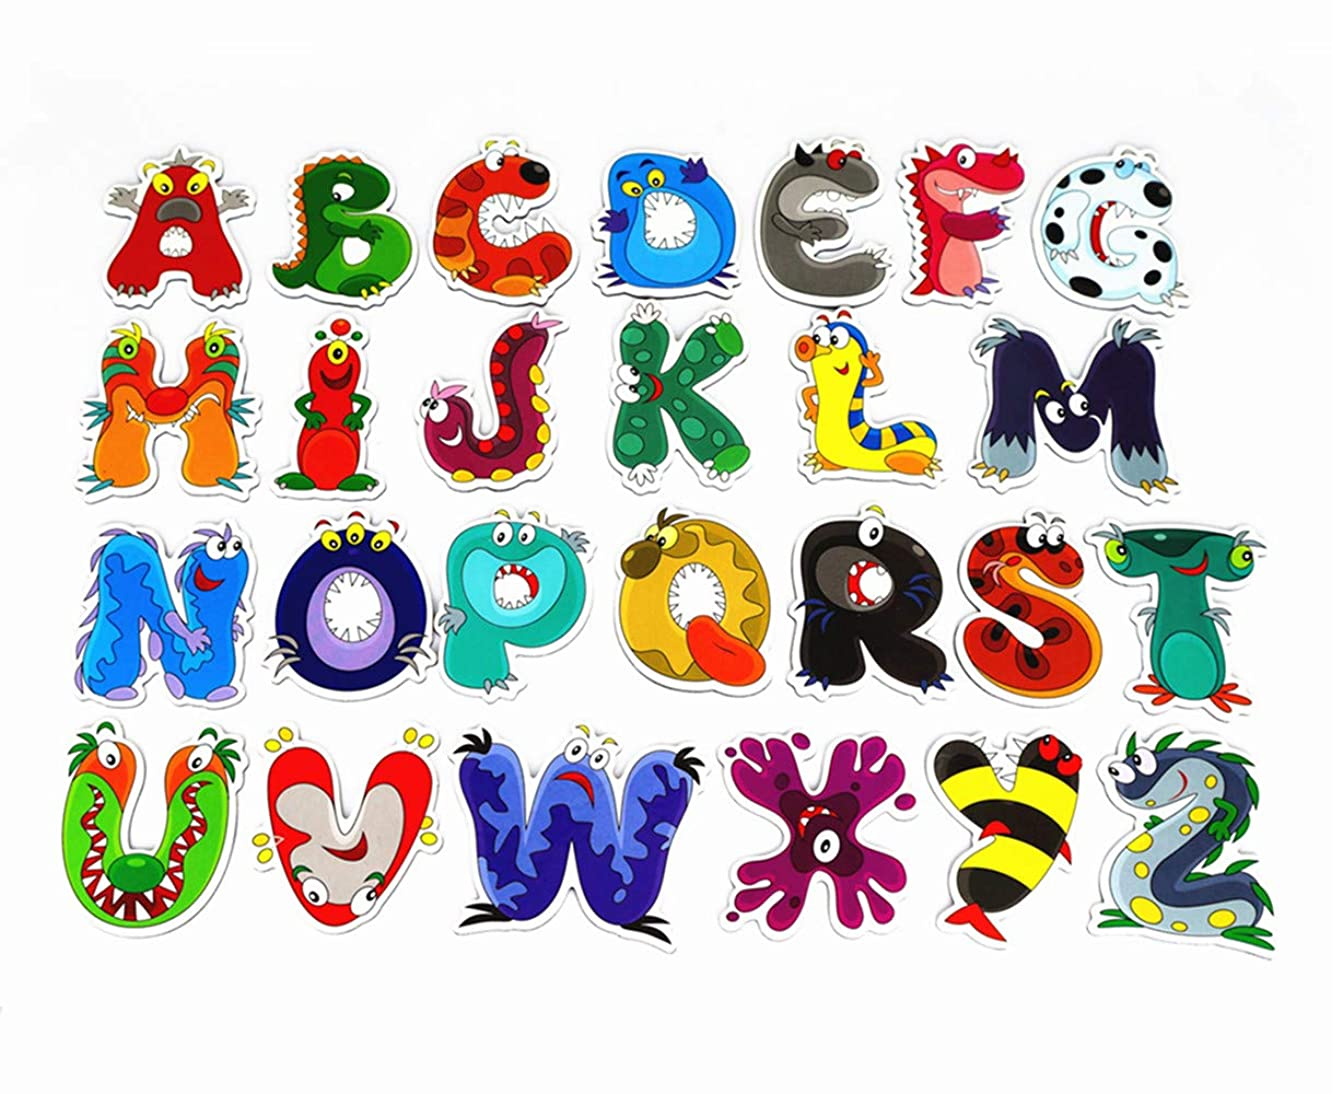 Soqool 26 Magnetic Letters Refrigerator Magnets for Kids Gift, Cute Animal Alphabet Magnets for Preschool Kids Leaning/Spelling, Home Decor(Animal)